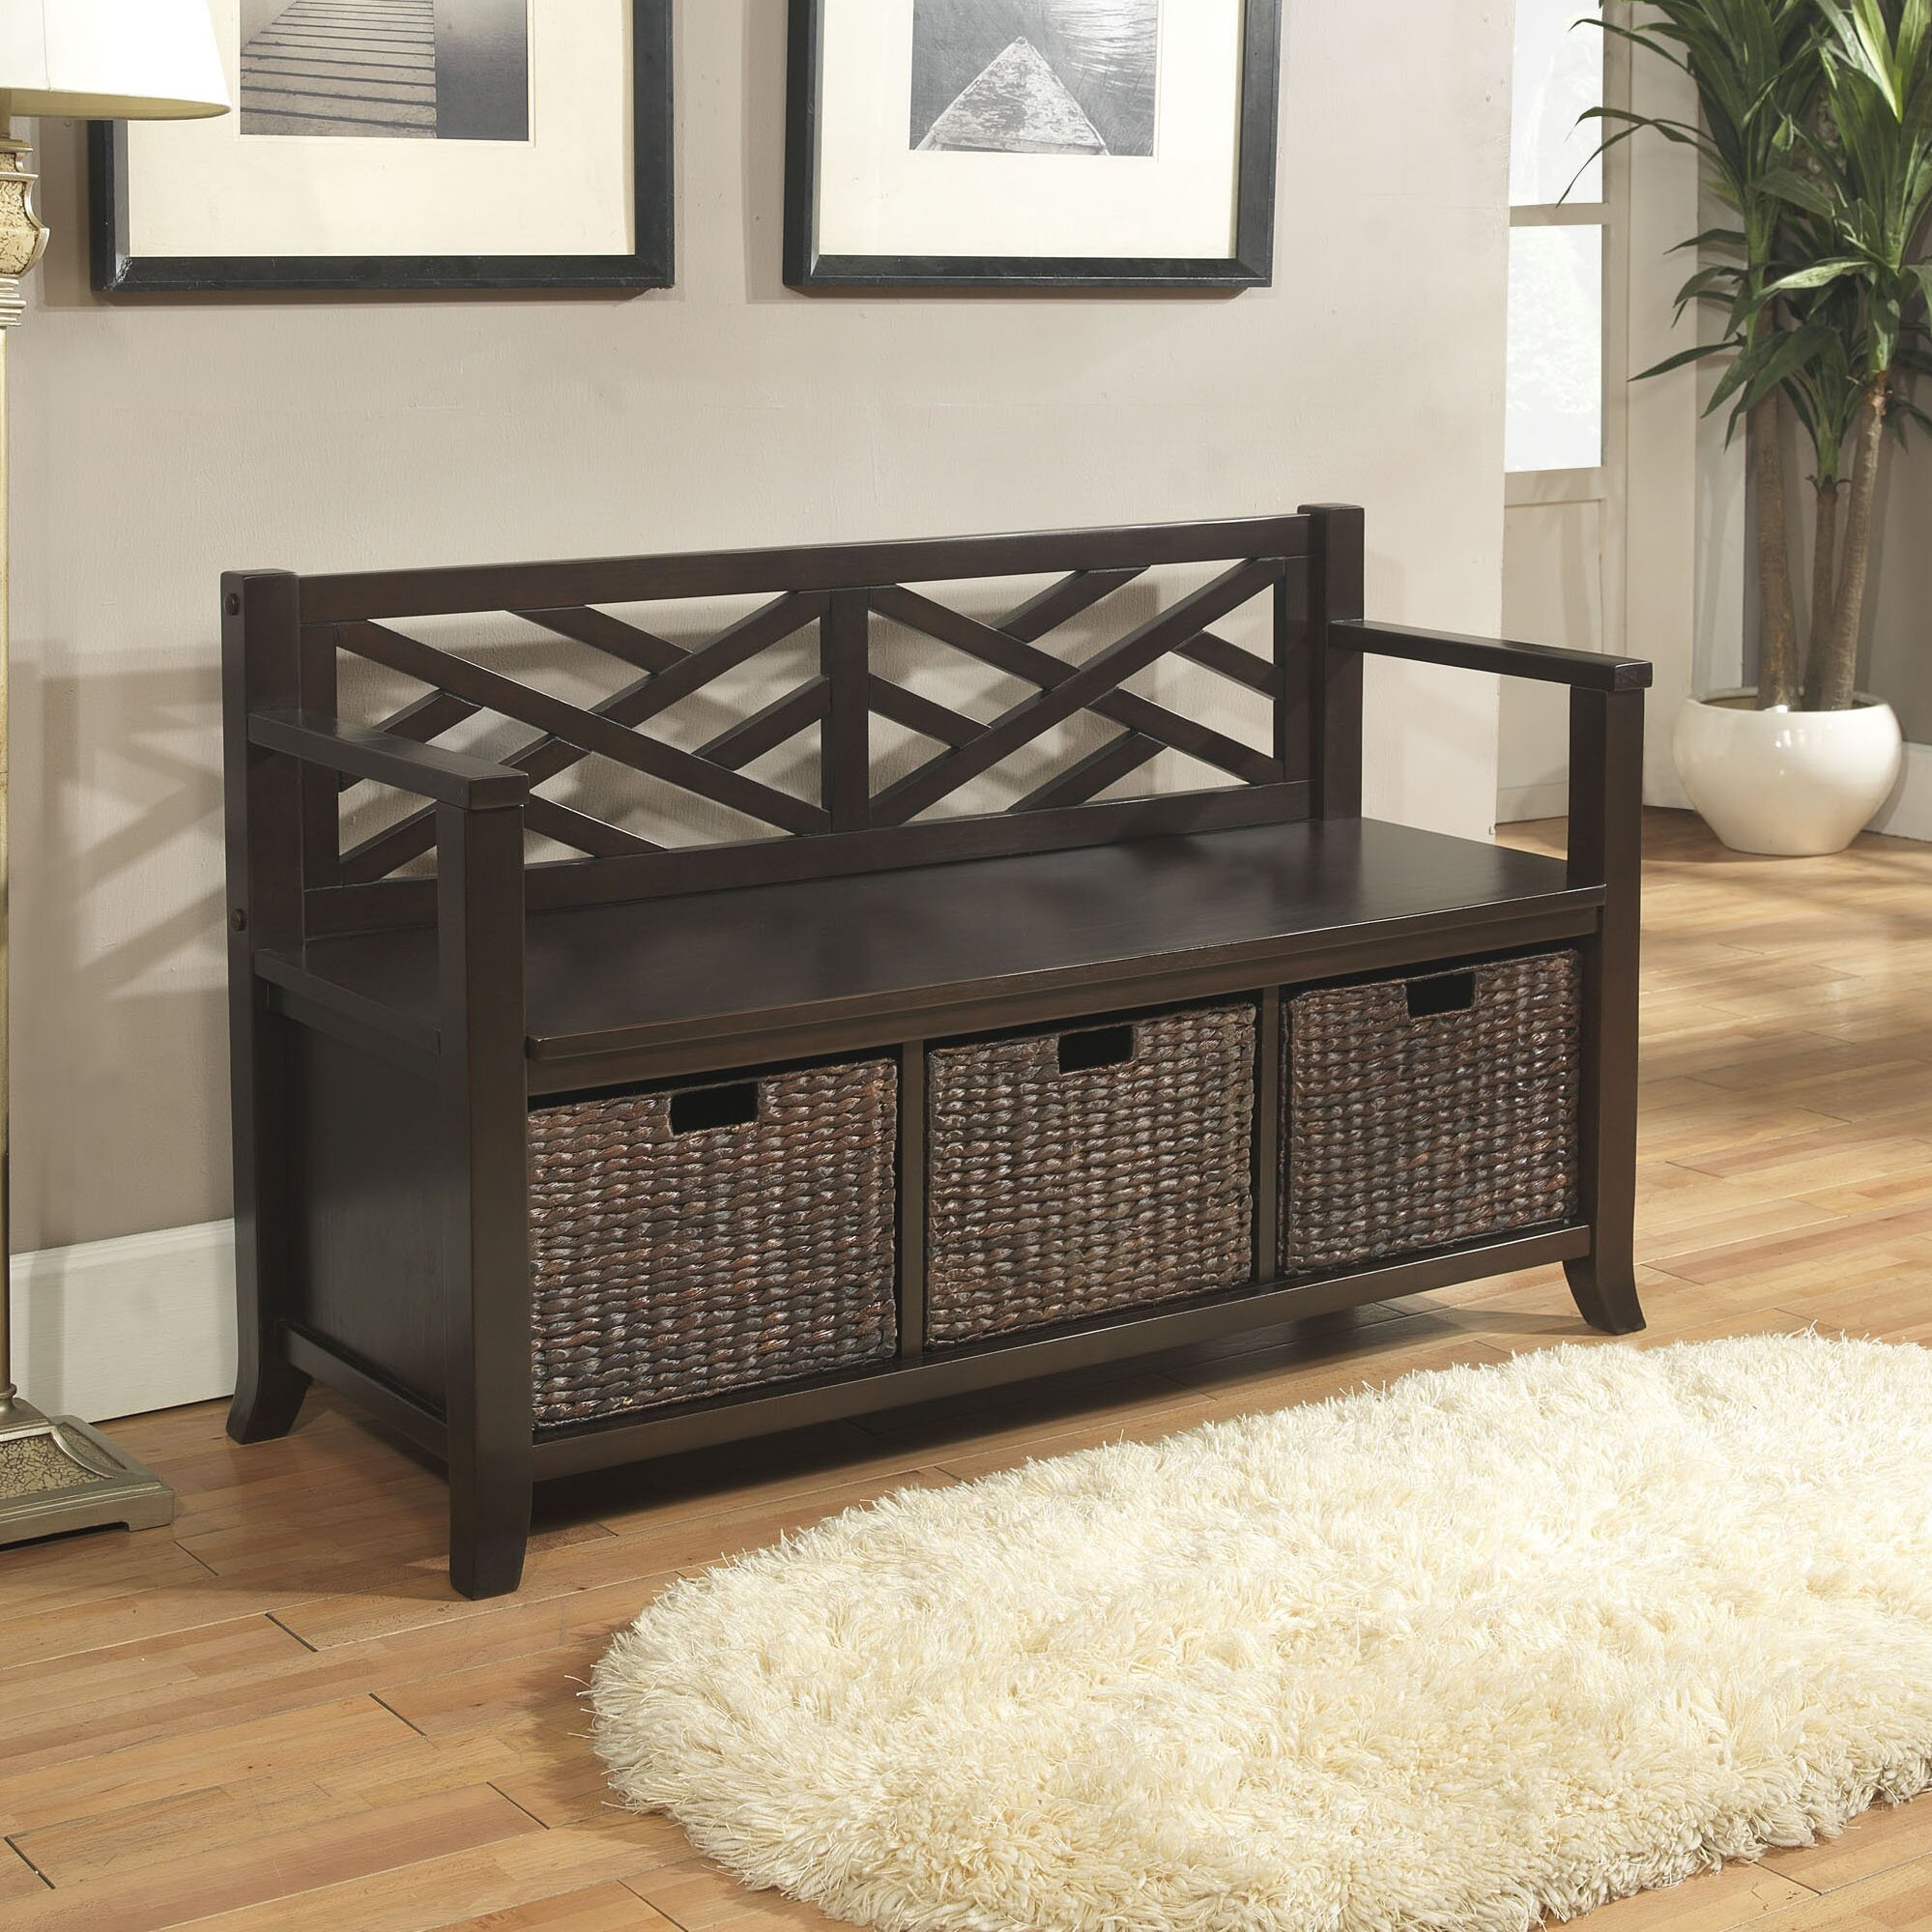 Foyer Mudroom Review : Simpli home adrien entryway storage bench reviews wayfair